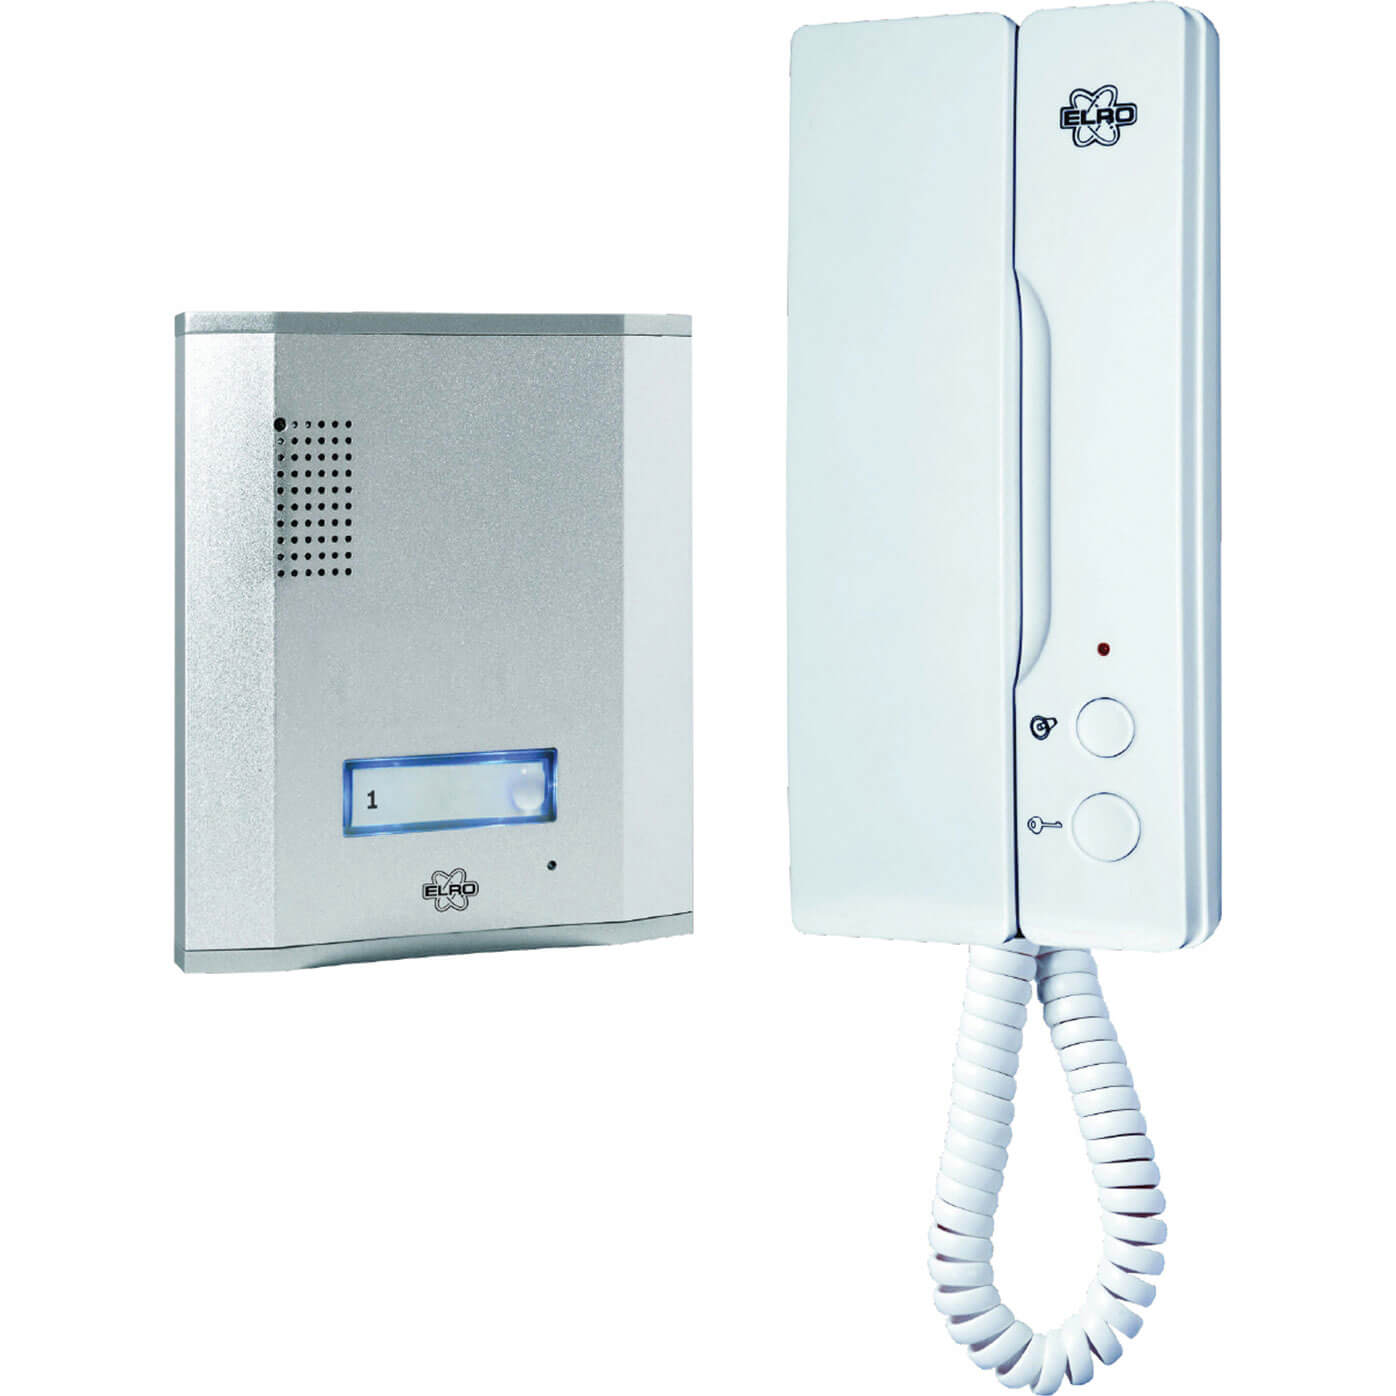 Offerta: Byron Audio Door Intercom Kit for 1 Apartment 240v